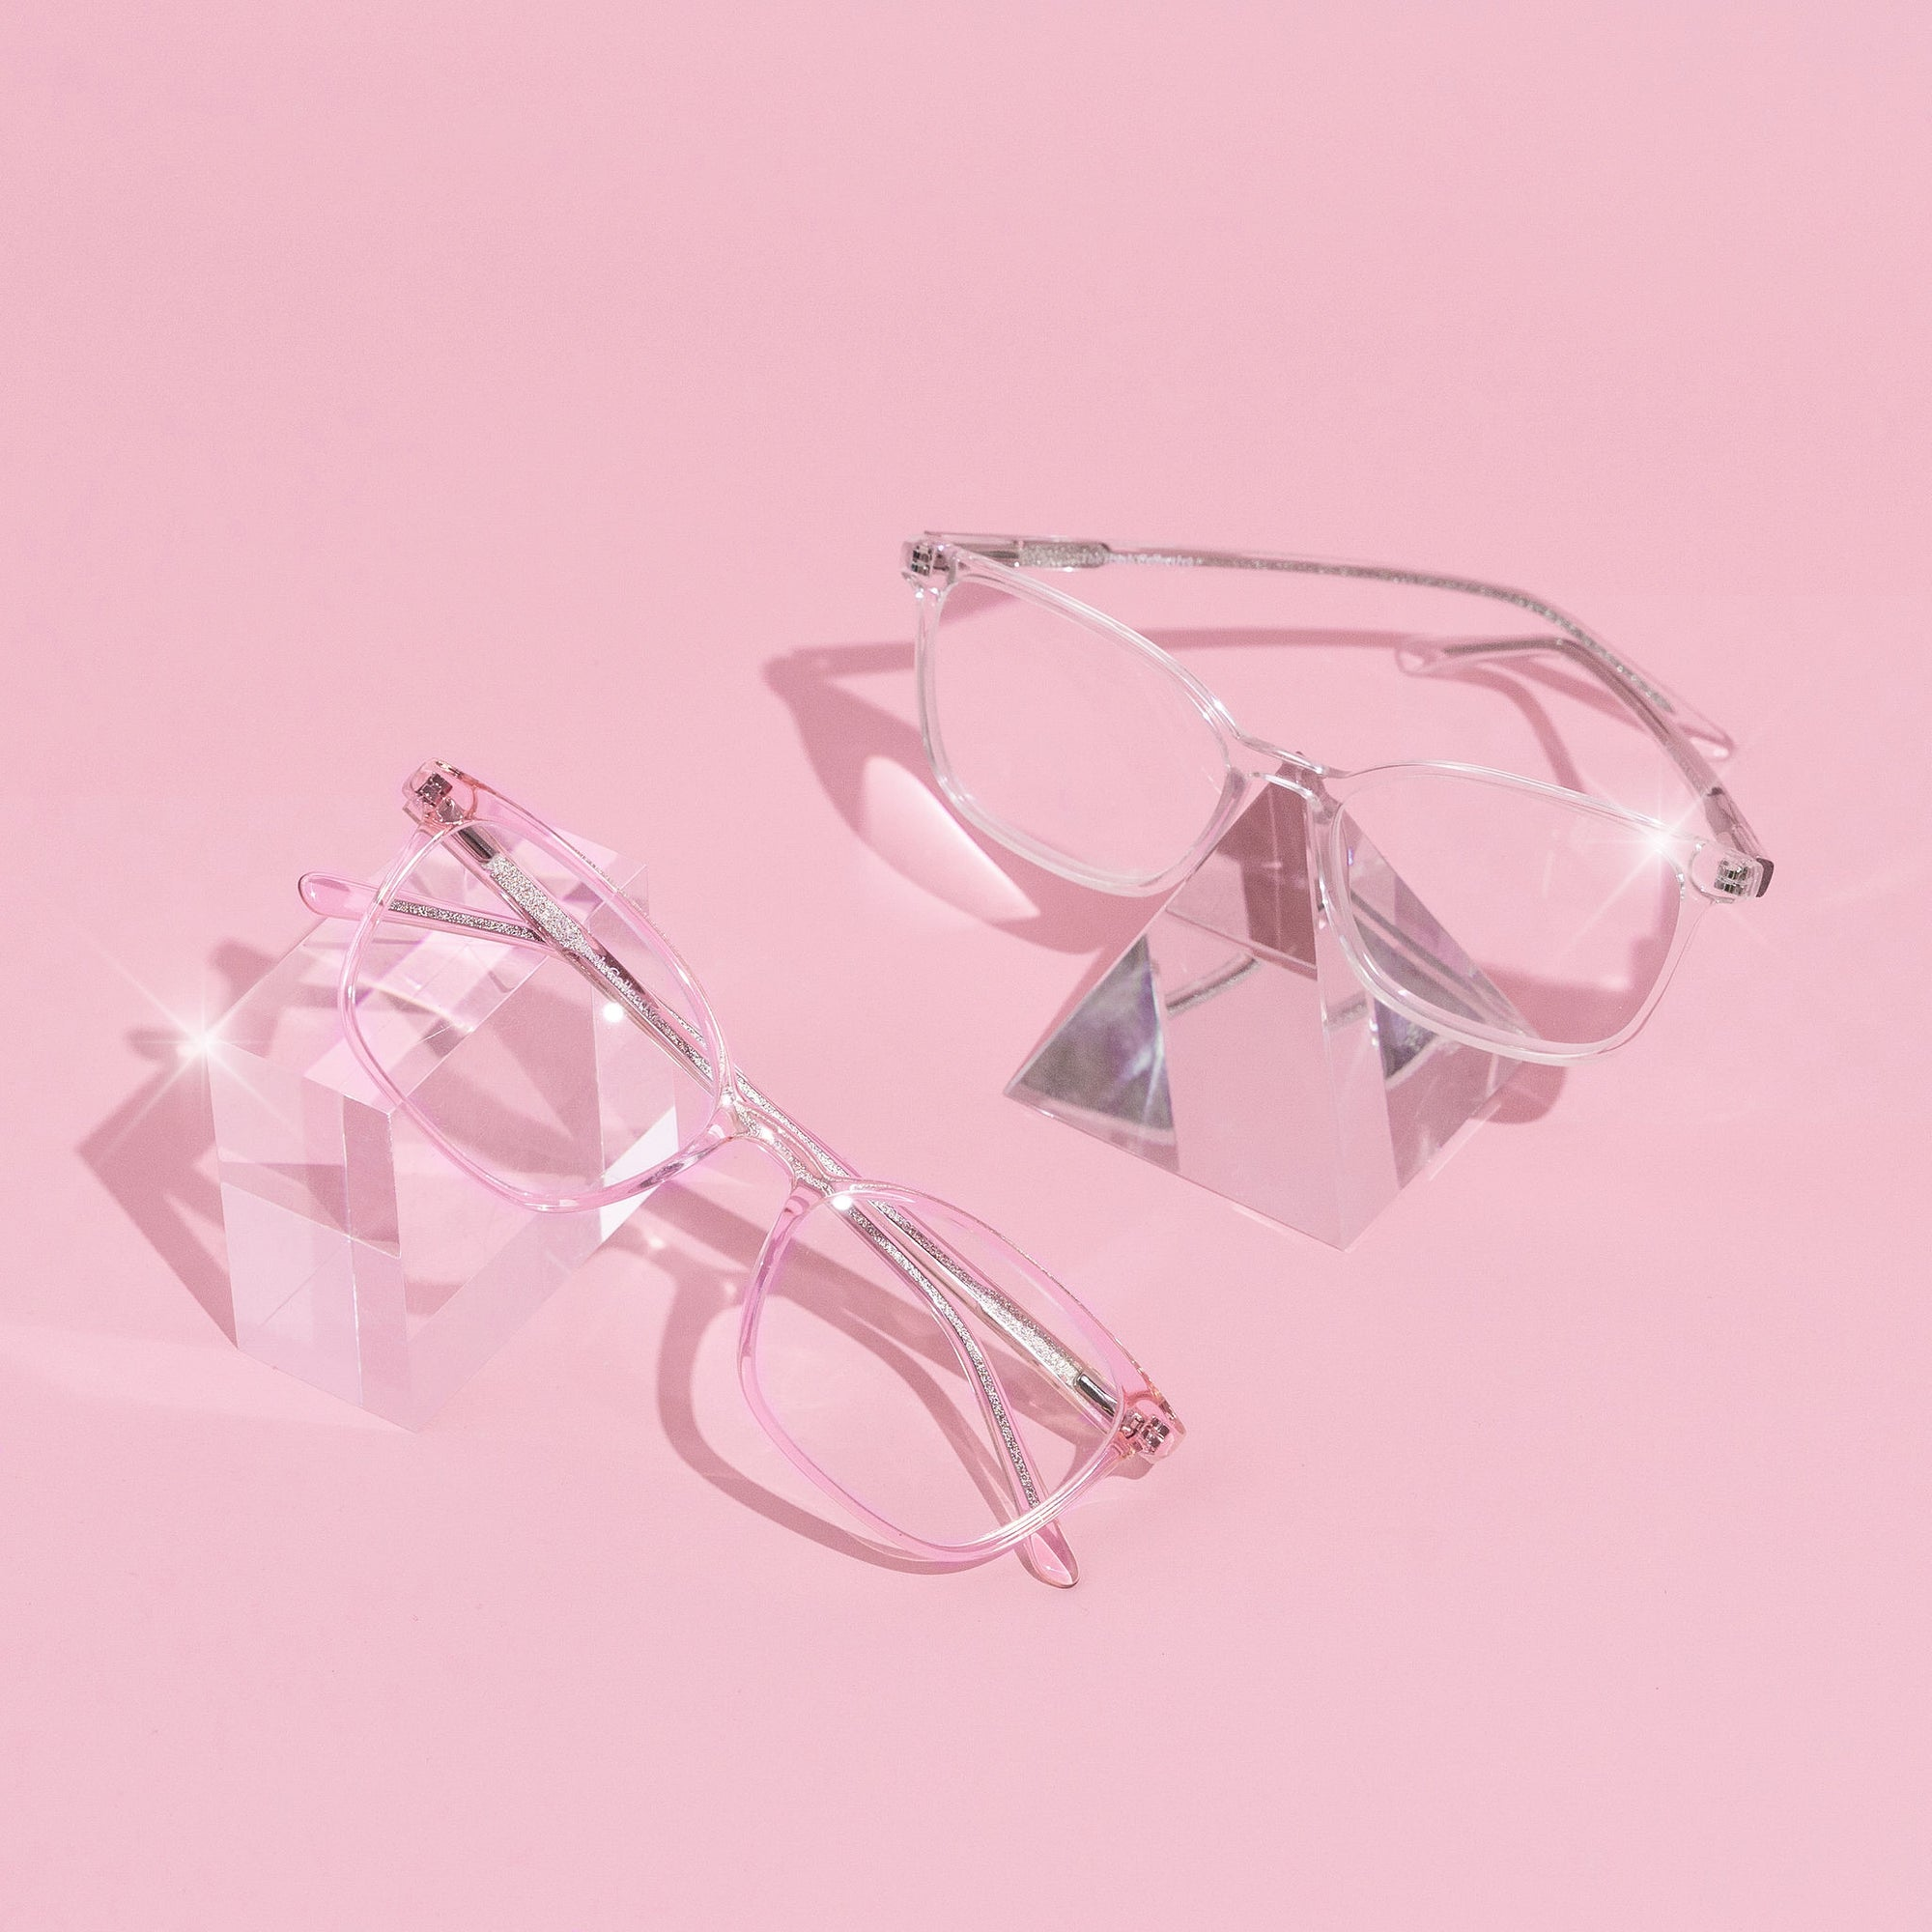 Magnifying Glasses for Eyelash Extensions